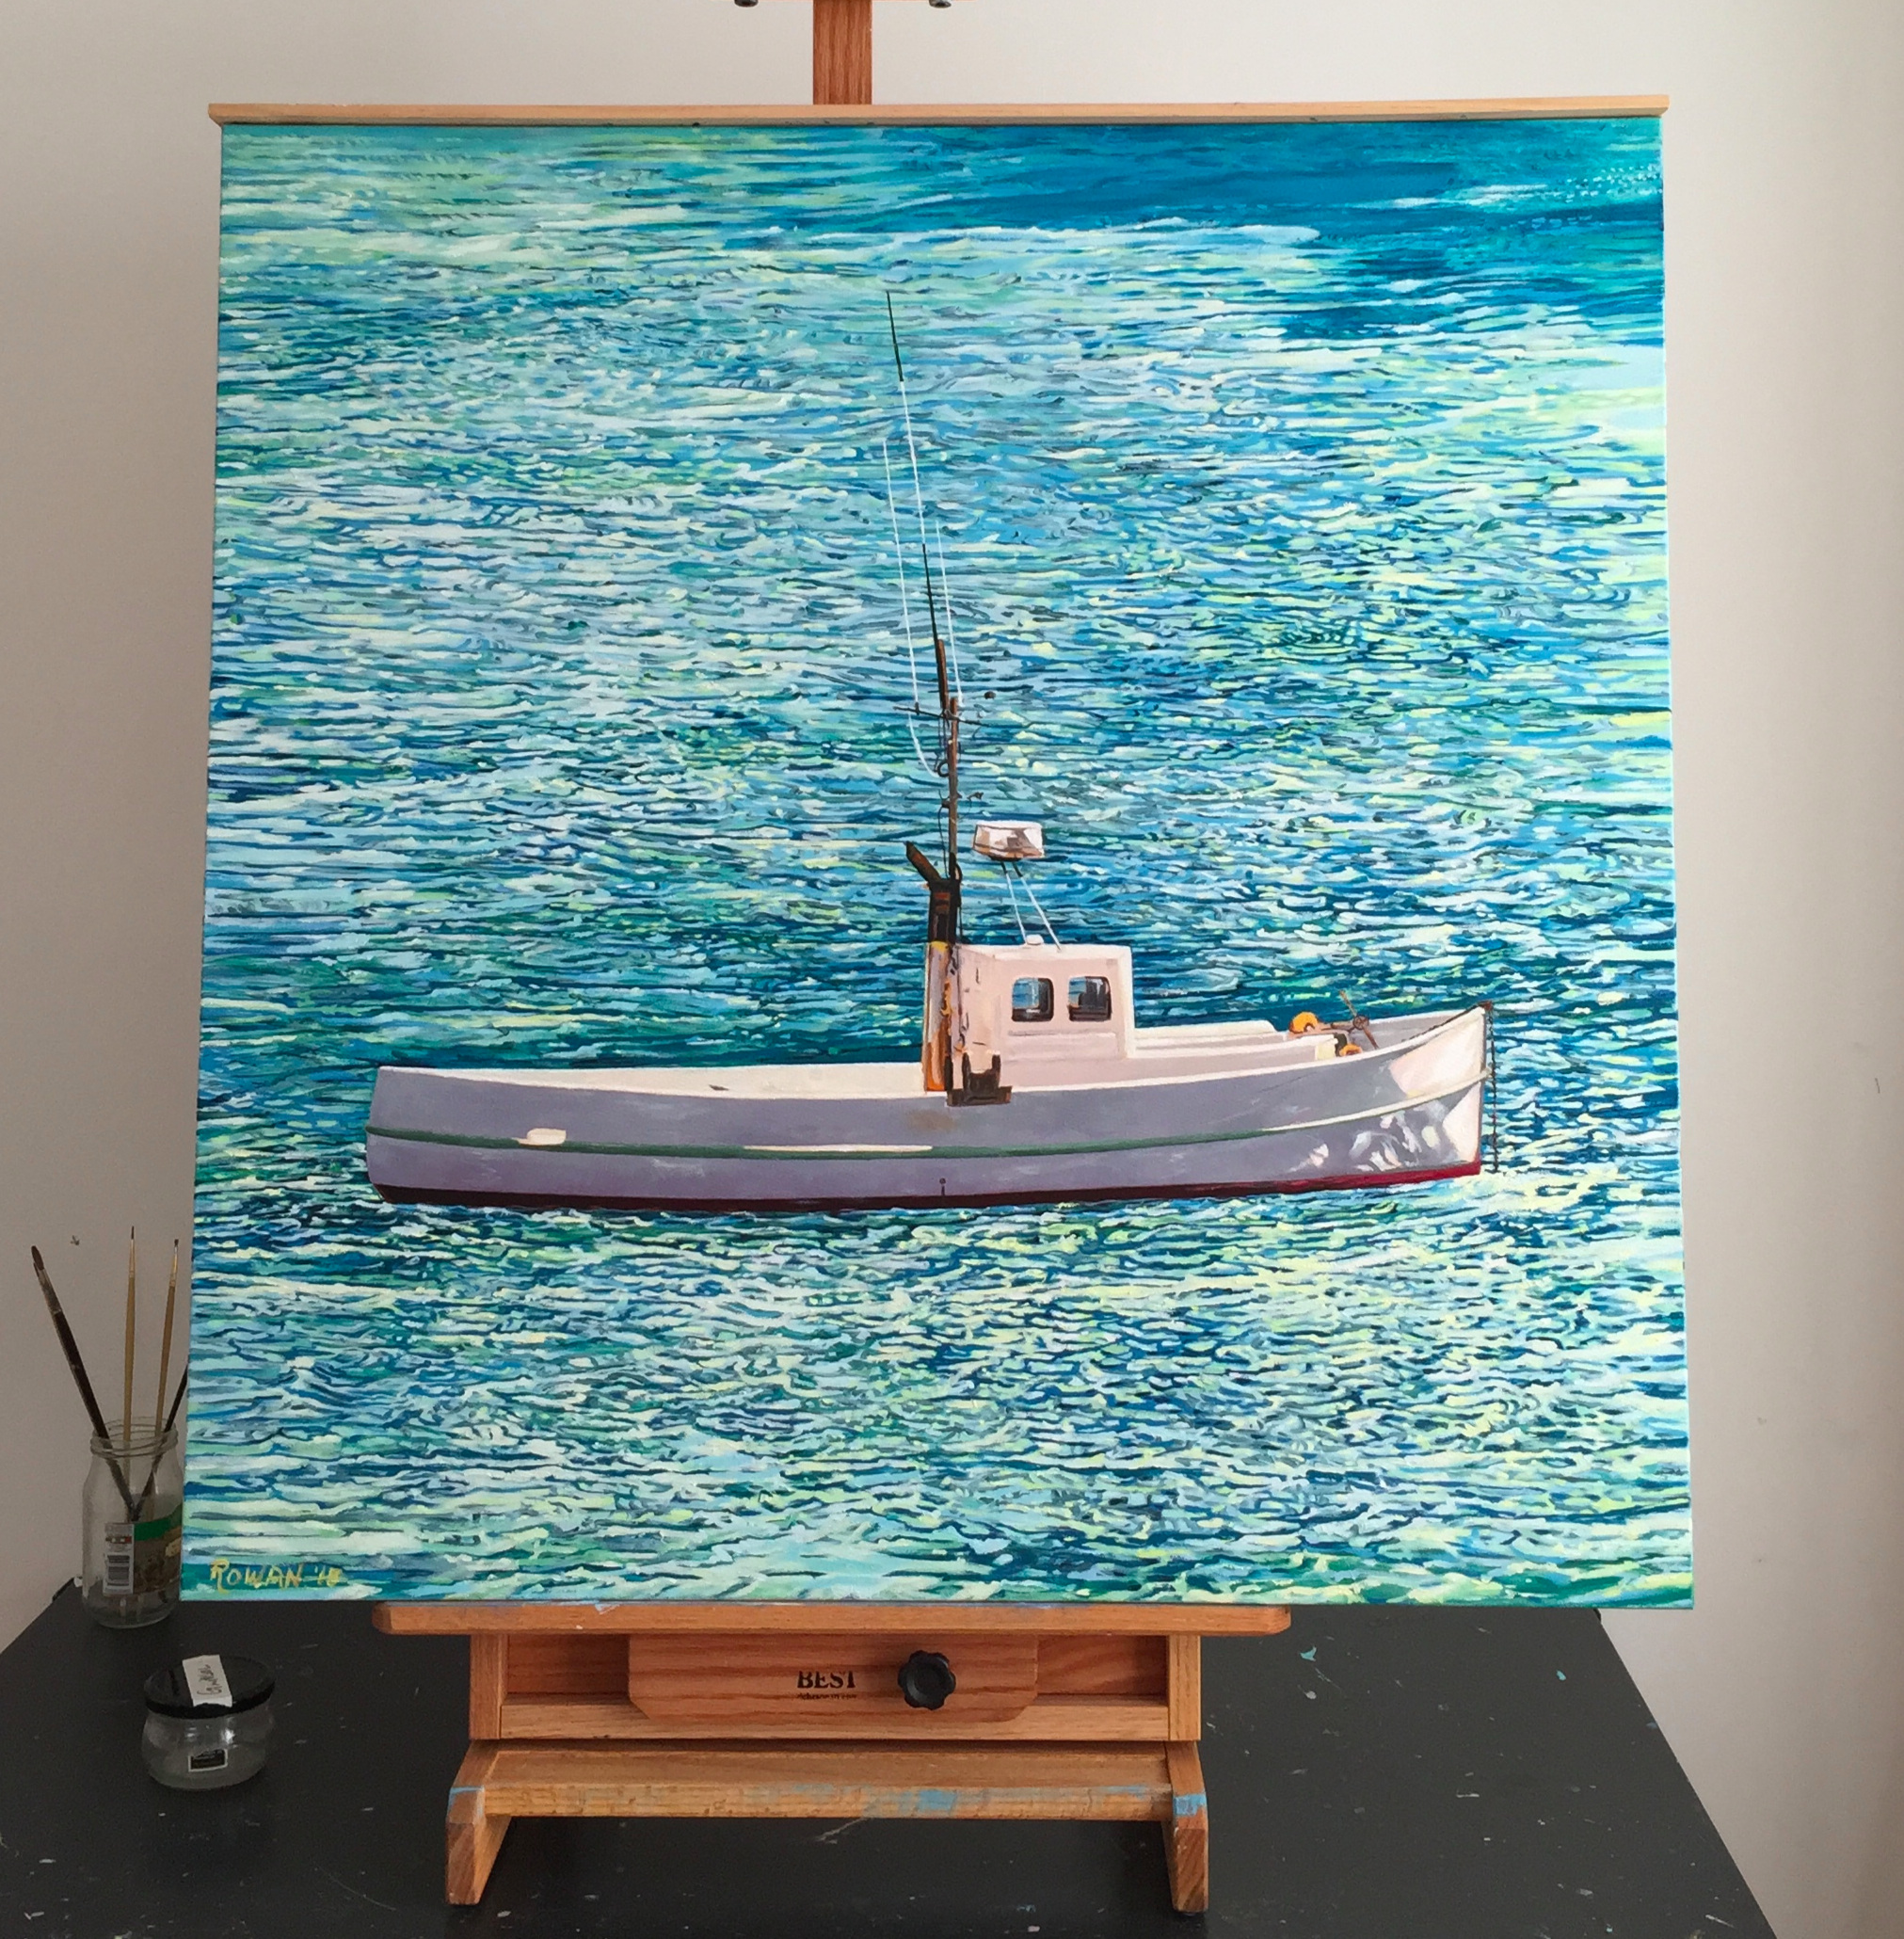 Maori Fishing Boat,  Marlborough Sound, New Zealand,   Oil on canvas 36 x 36 inches, available